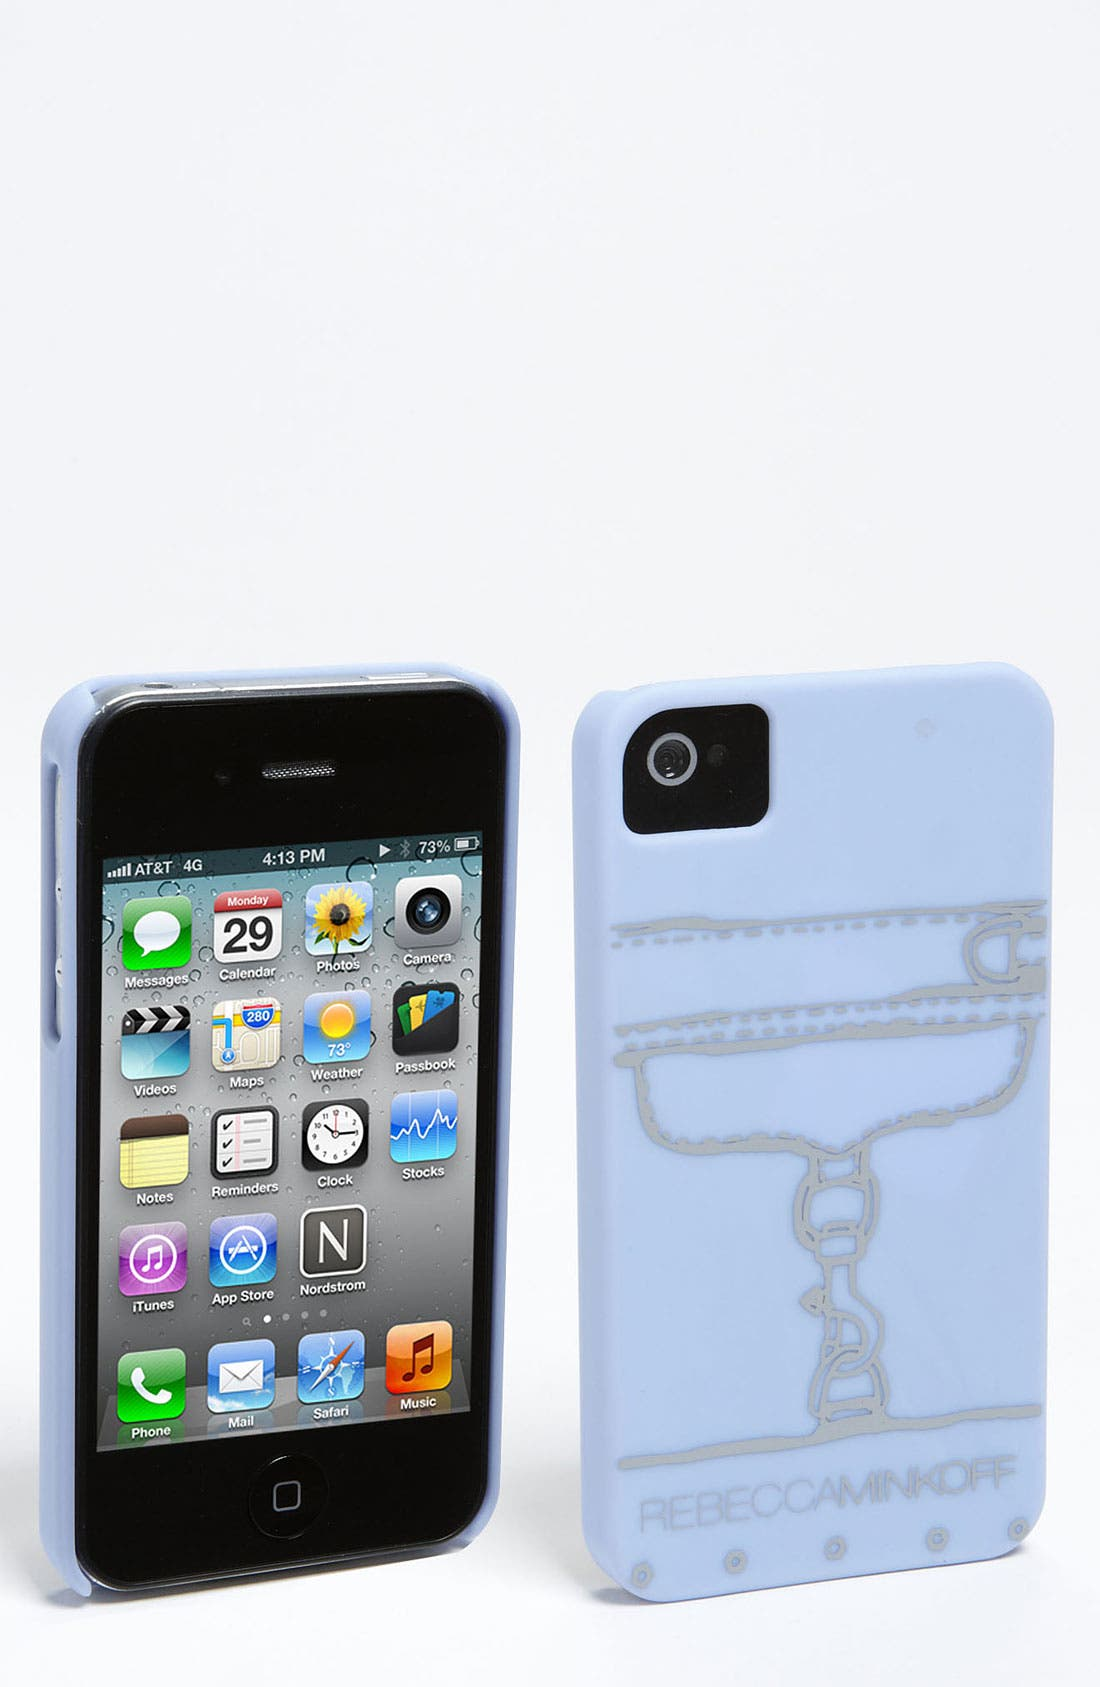 Main Image - Rebecca Minkoff iPhone 5 Case